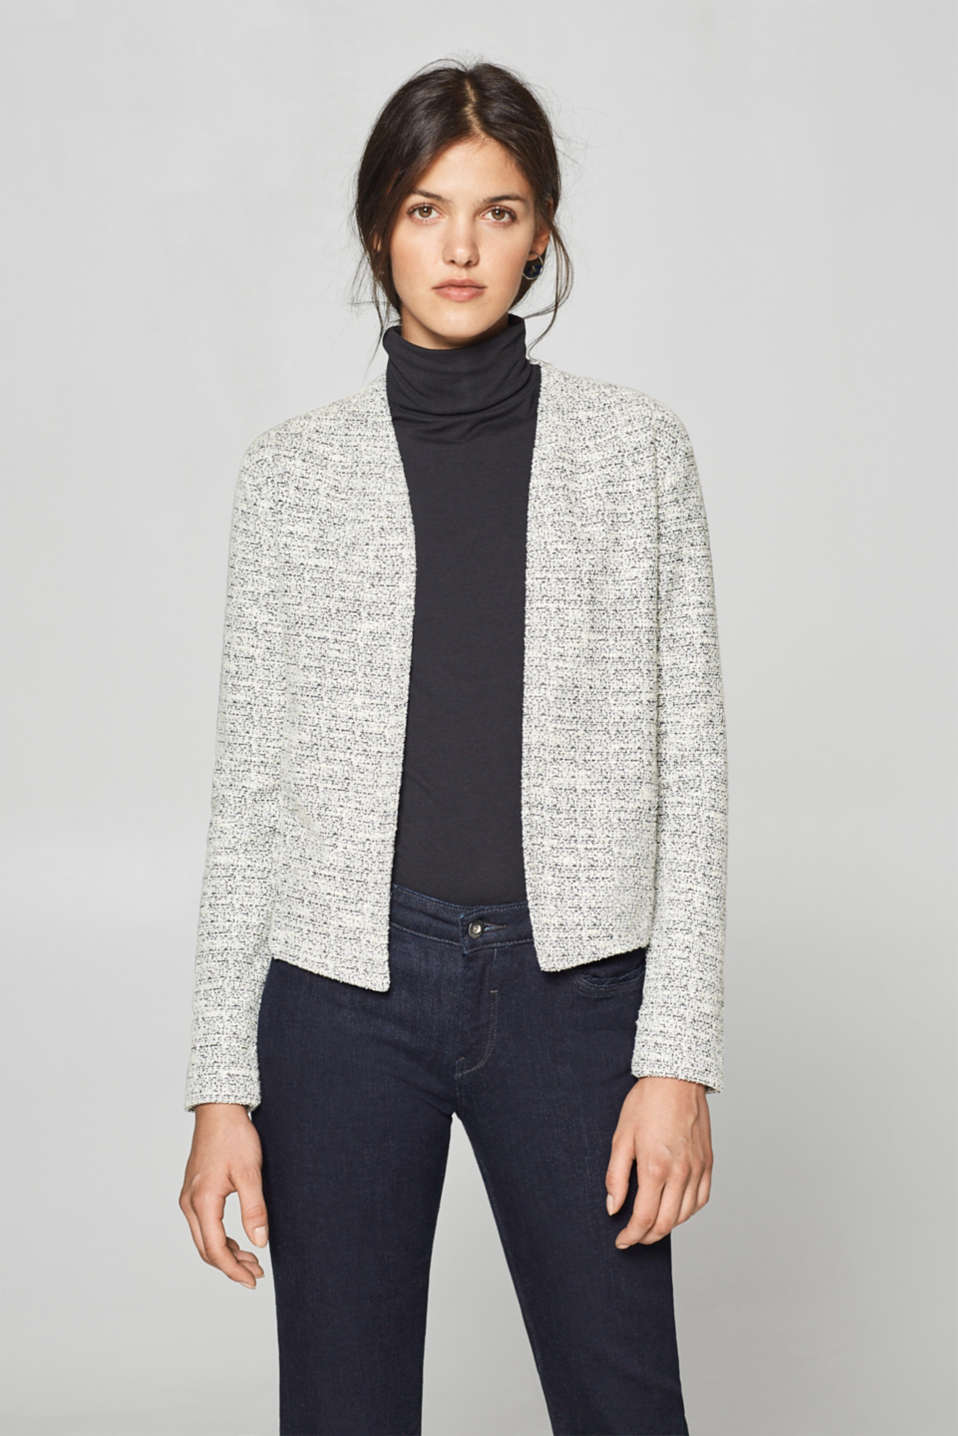 Esprit - Textured stretch jersey cardigan